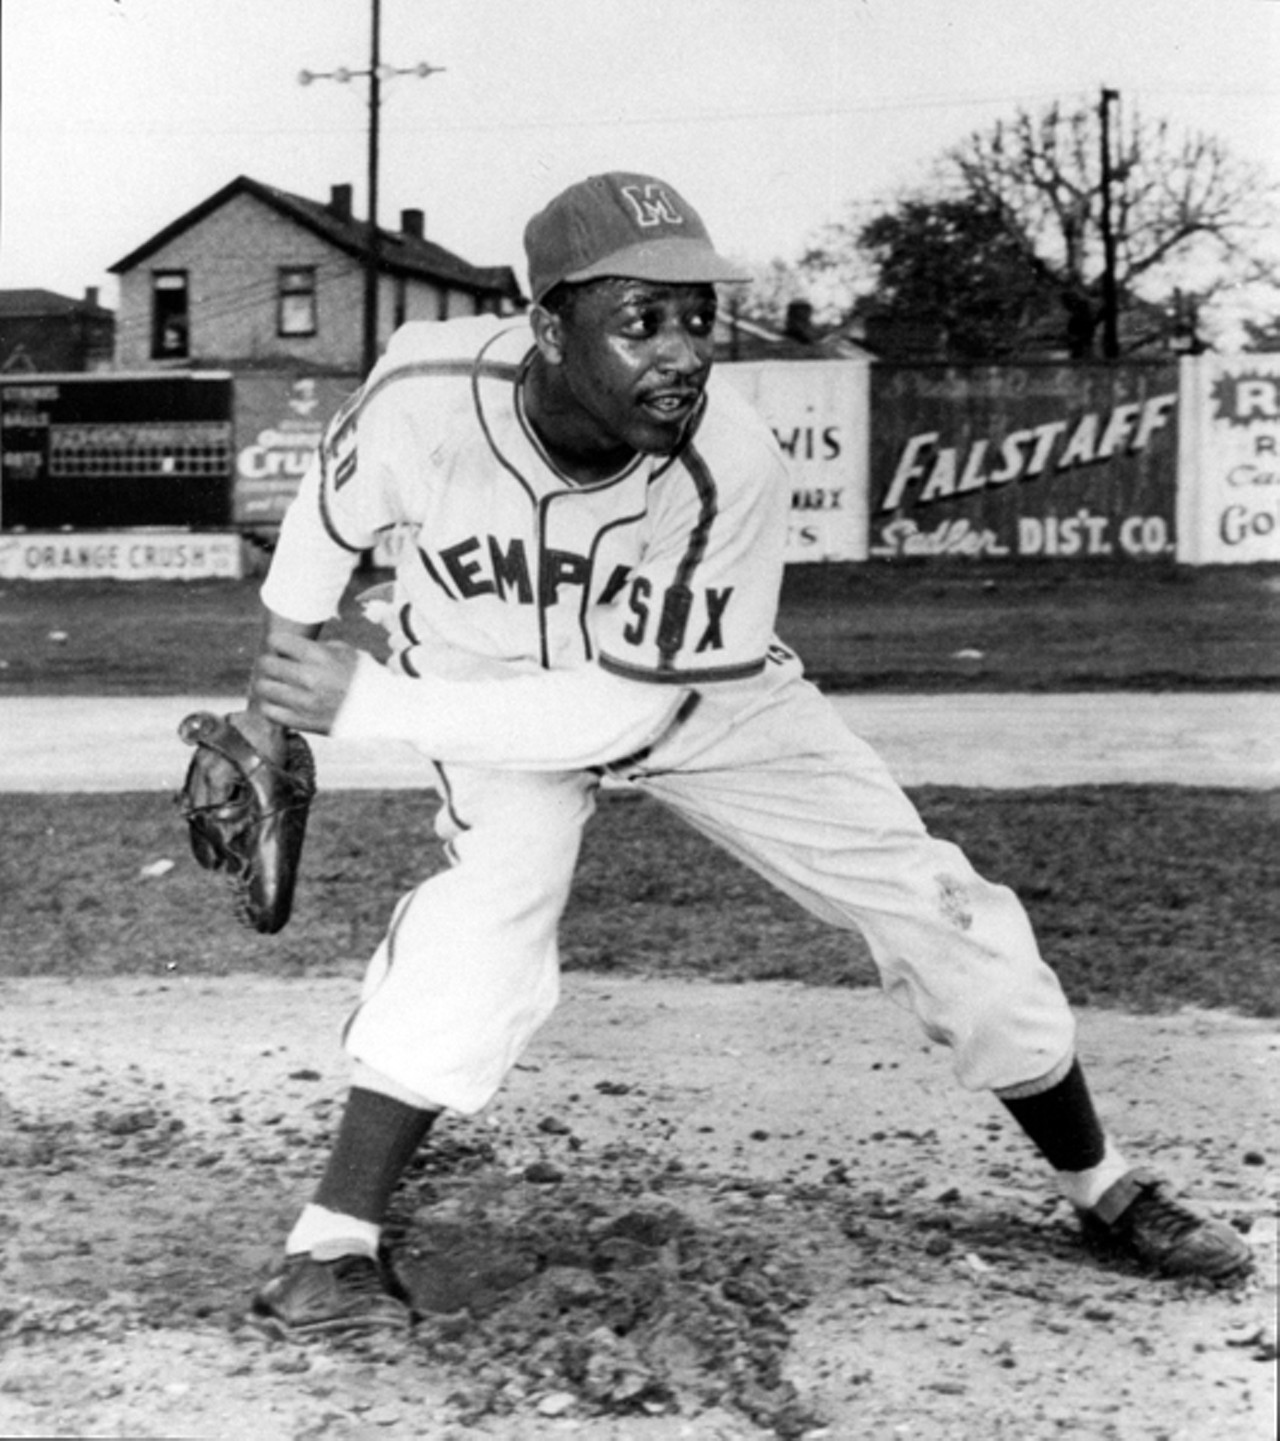 The Negro Leagues | A Photo Essay